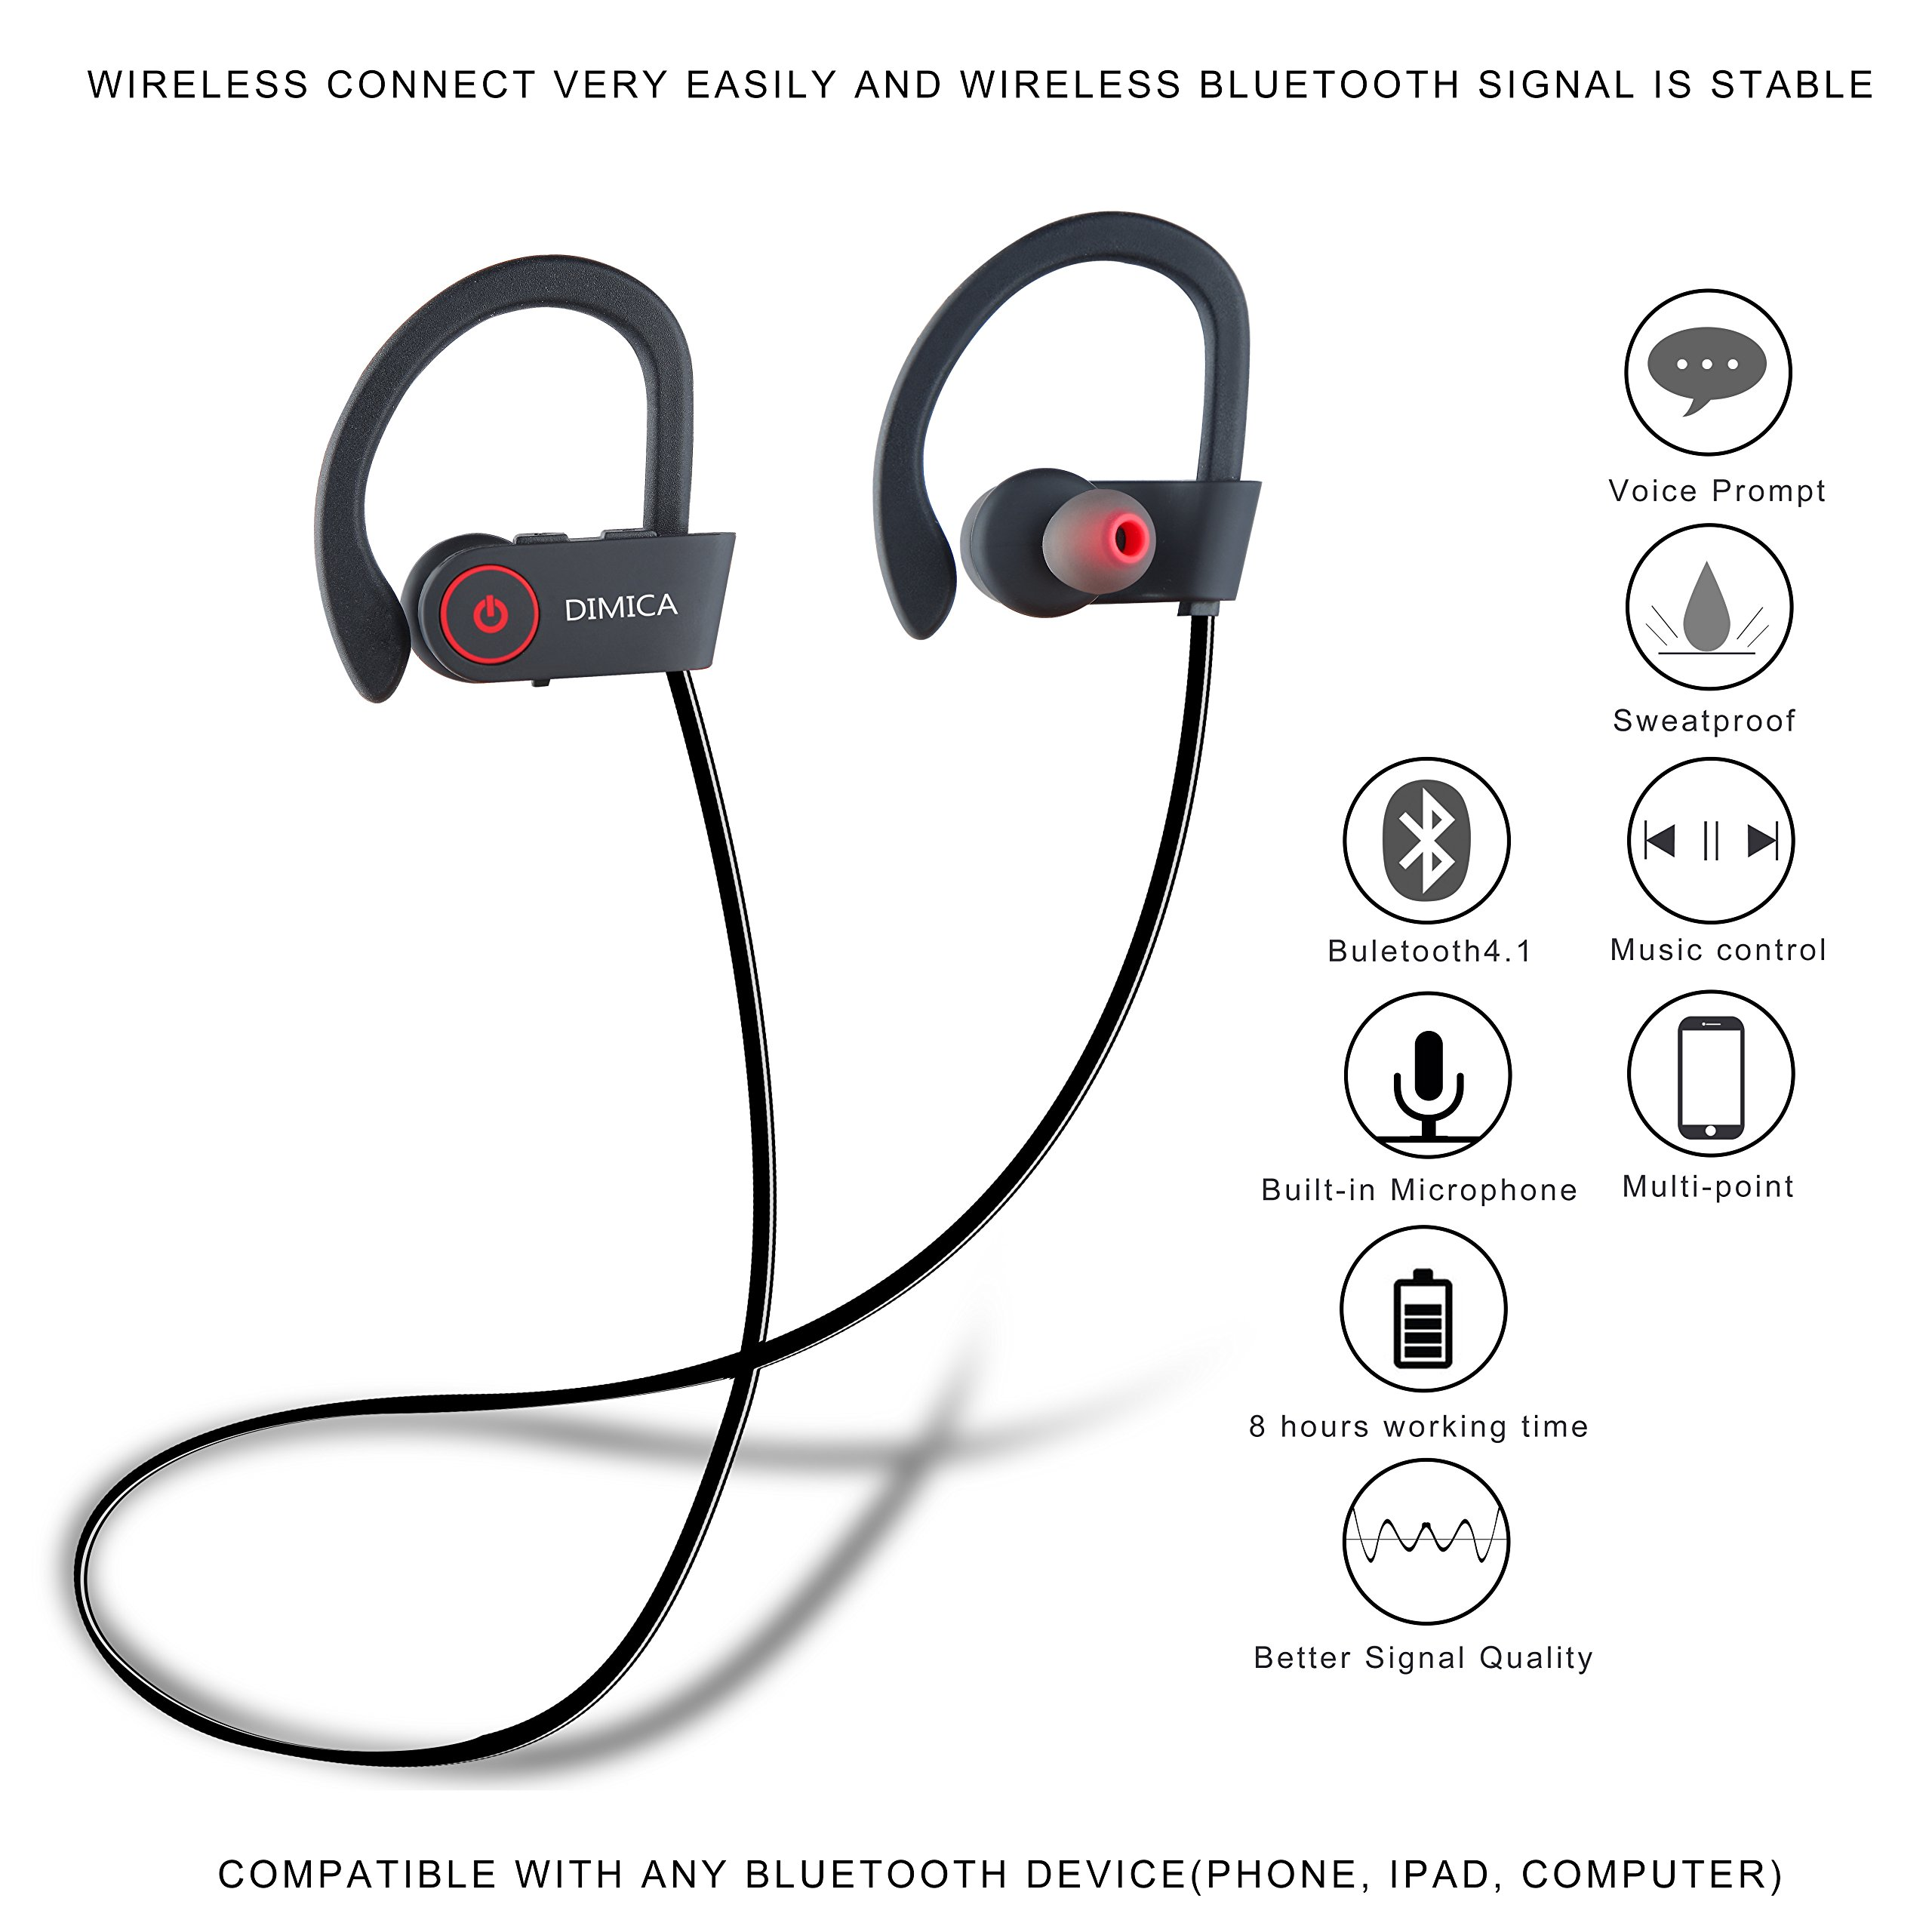 Stereo Earbuds with Bass, Wireless Bluetooth Headphones with Mic Noise Cancelling Headphone with Battery Portable Bluetooth Headset Durable Sweatproof Sports Outdoor Earphones for Men Women (Black-8)